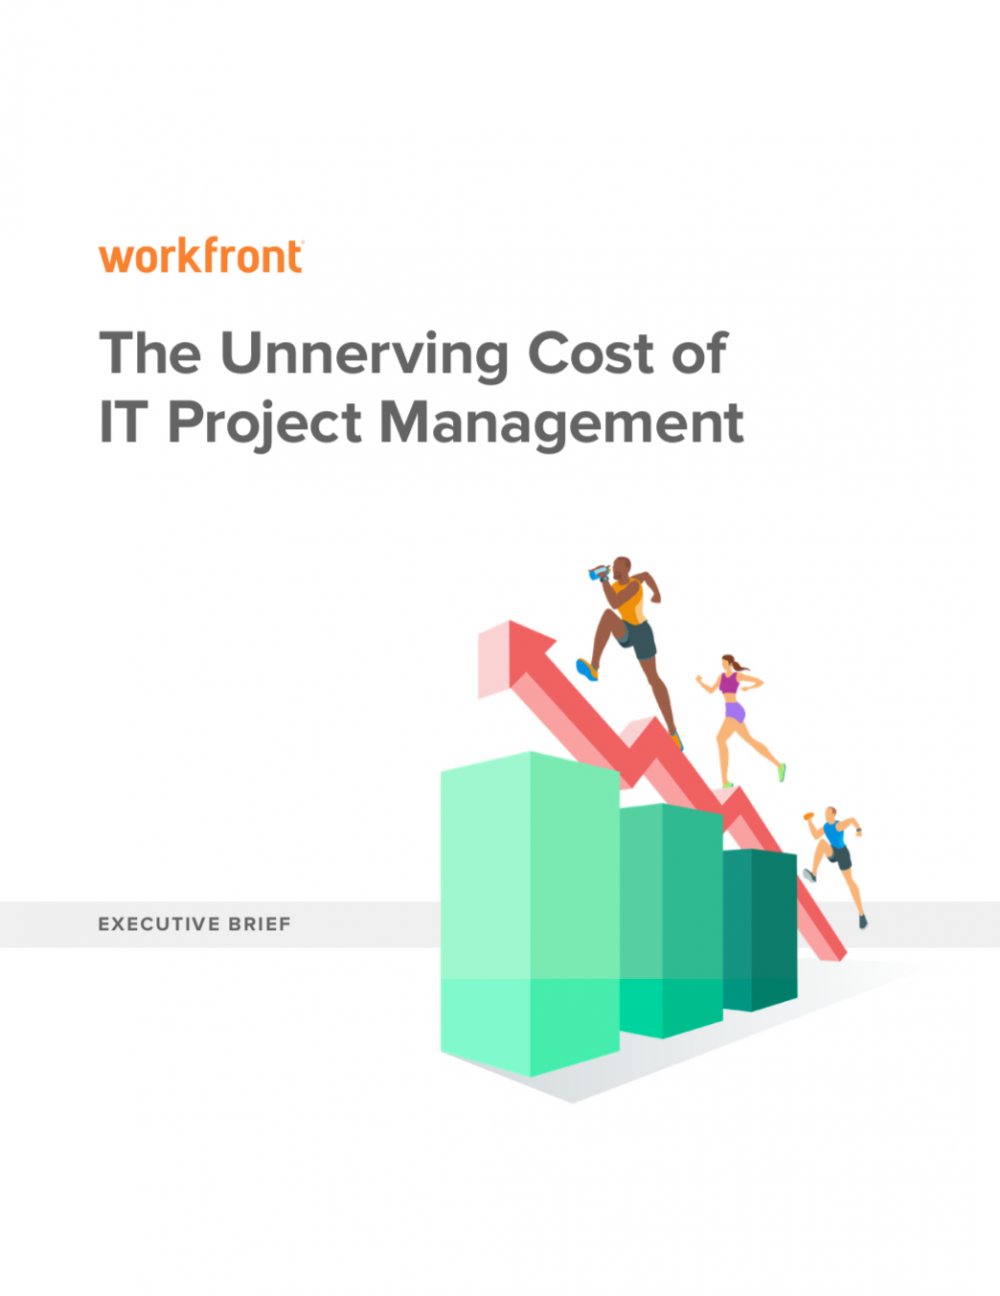 Unnerving Cost of IT Project Management